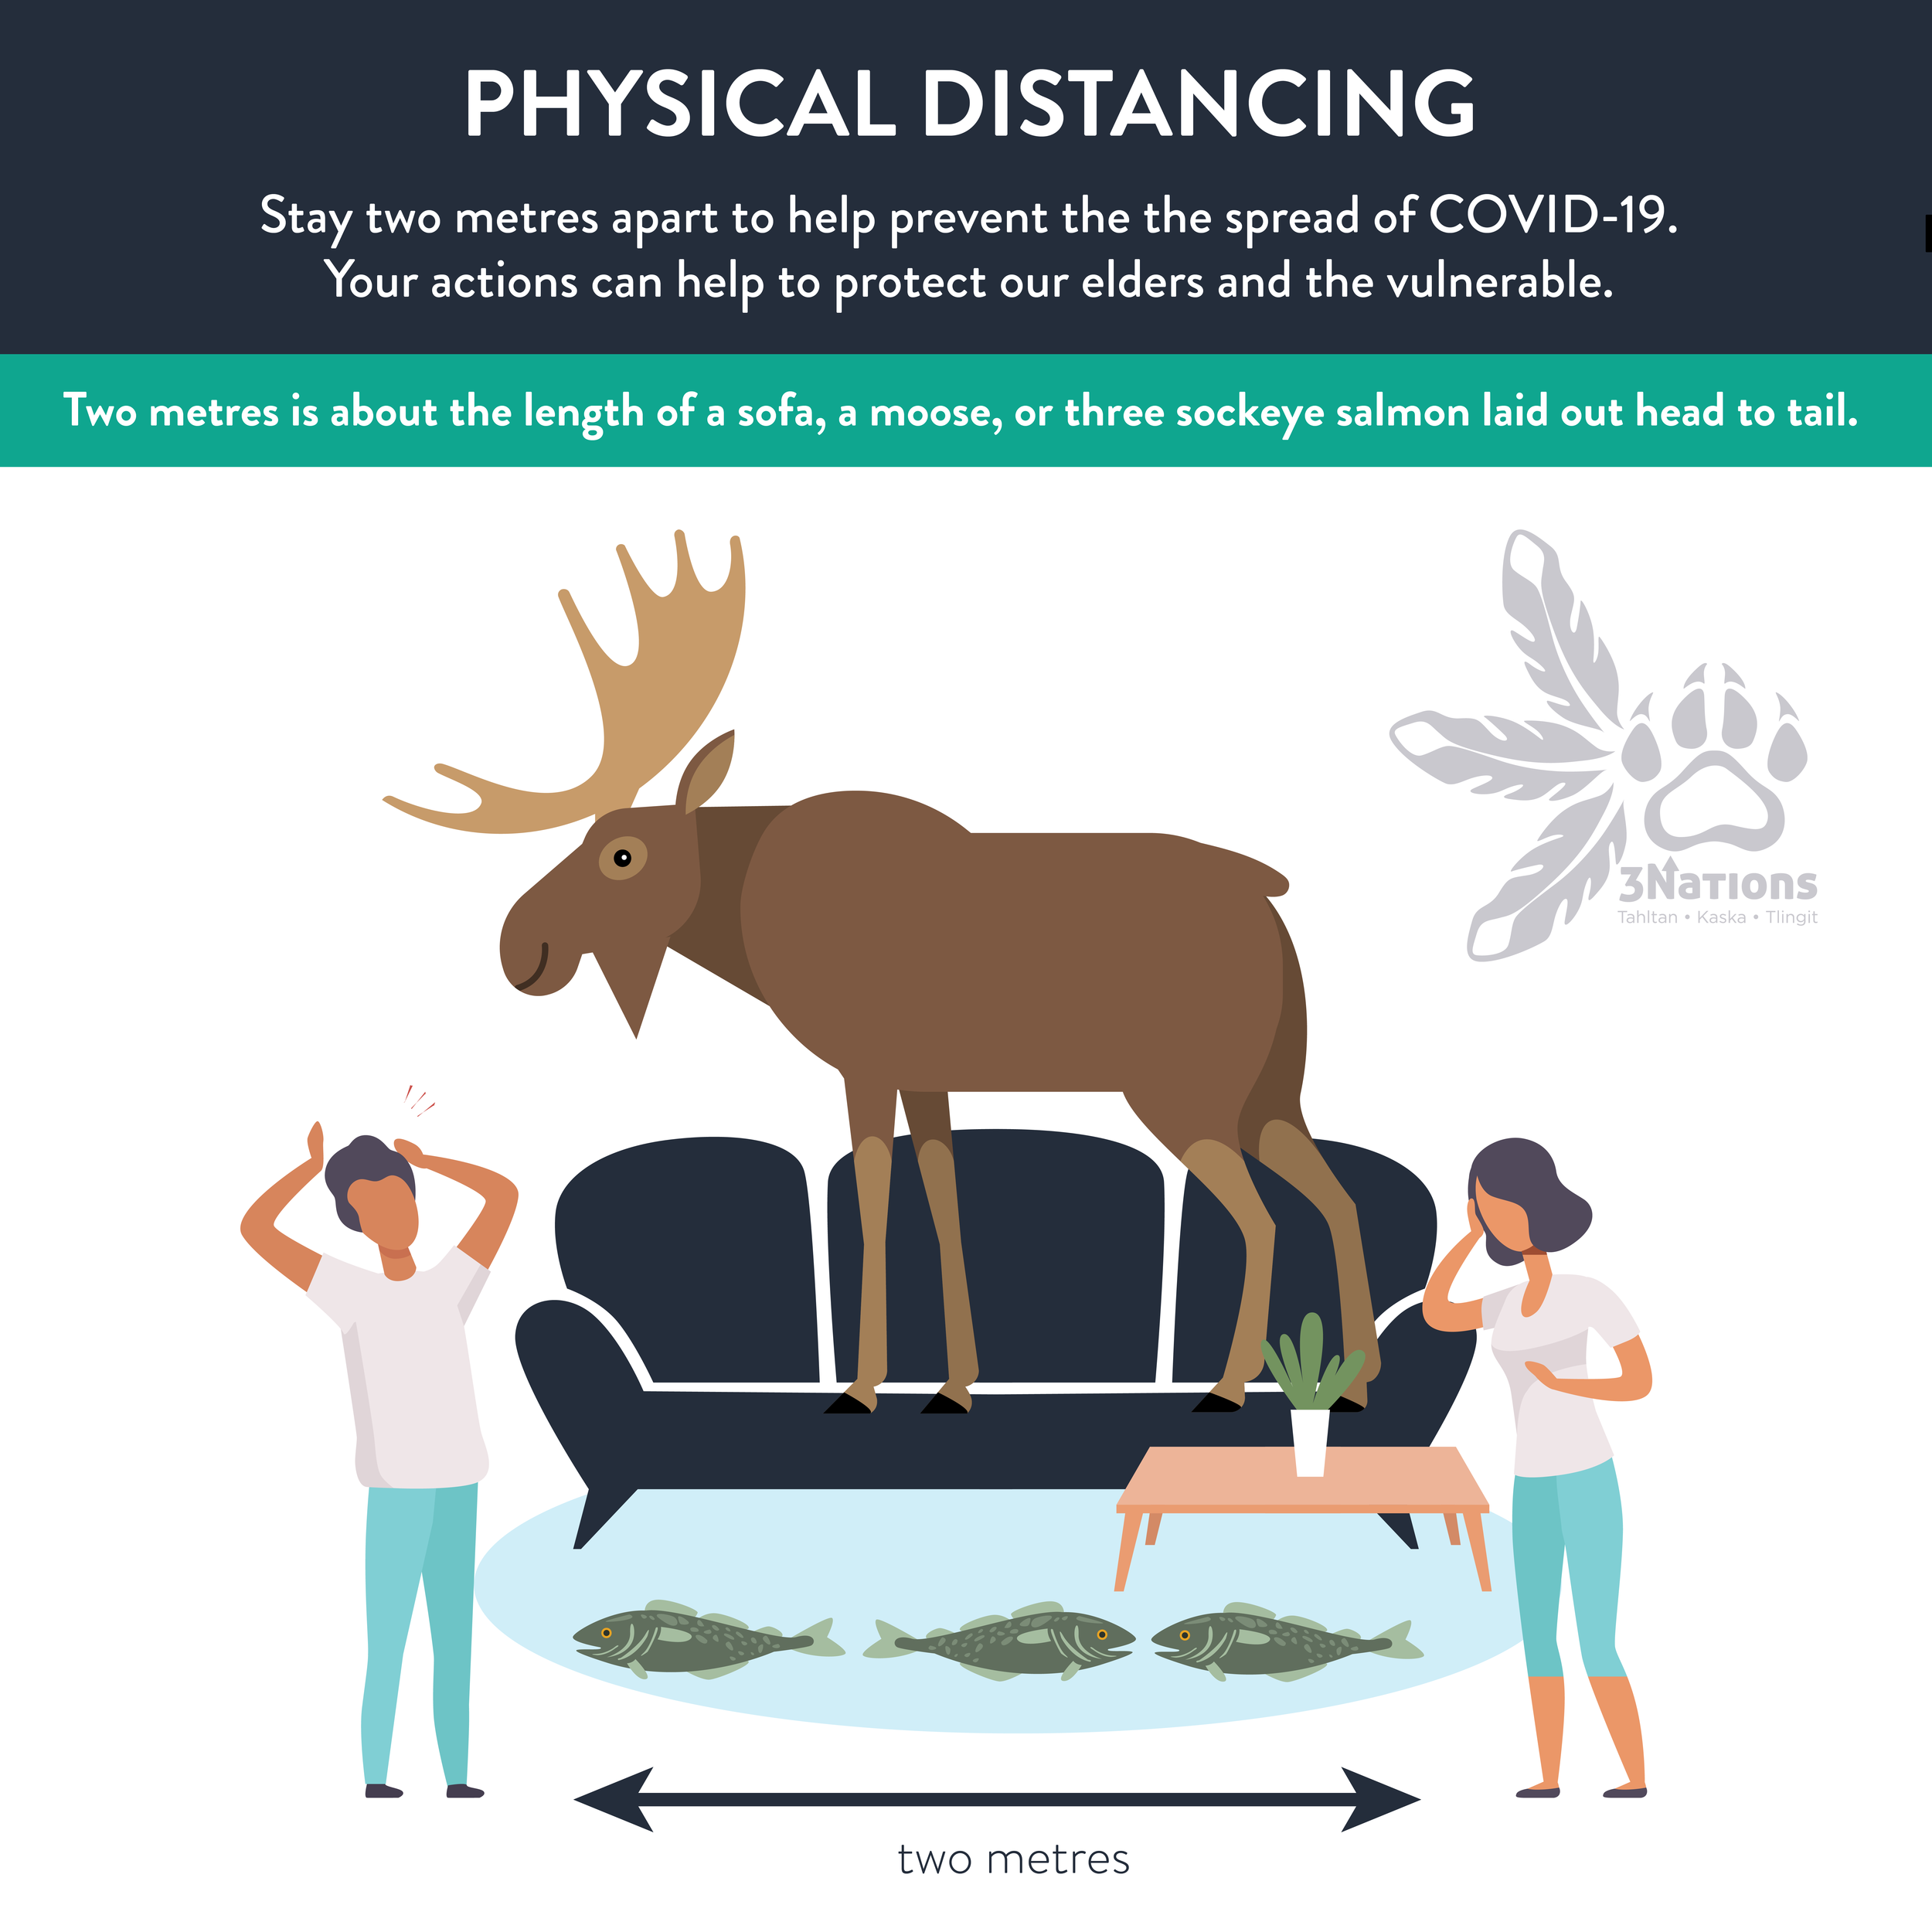 3 Nations COVID-19 Physical Distancing Infographic - Distance in Sofa, Moose, and Salmon